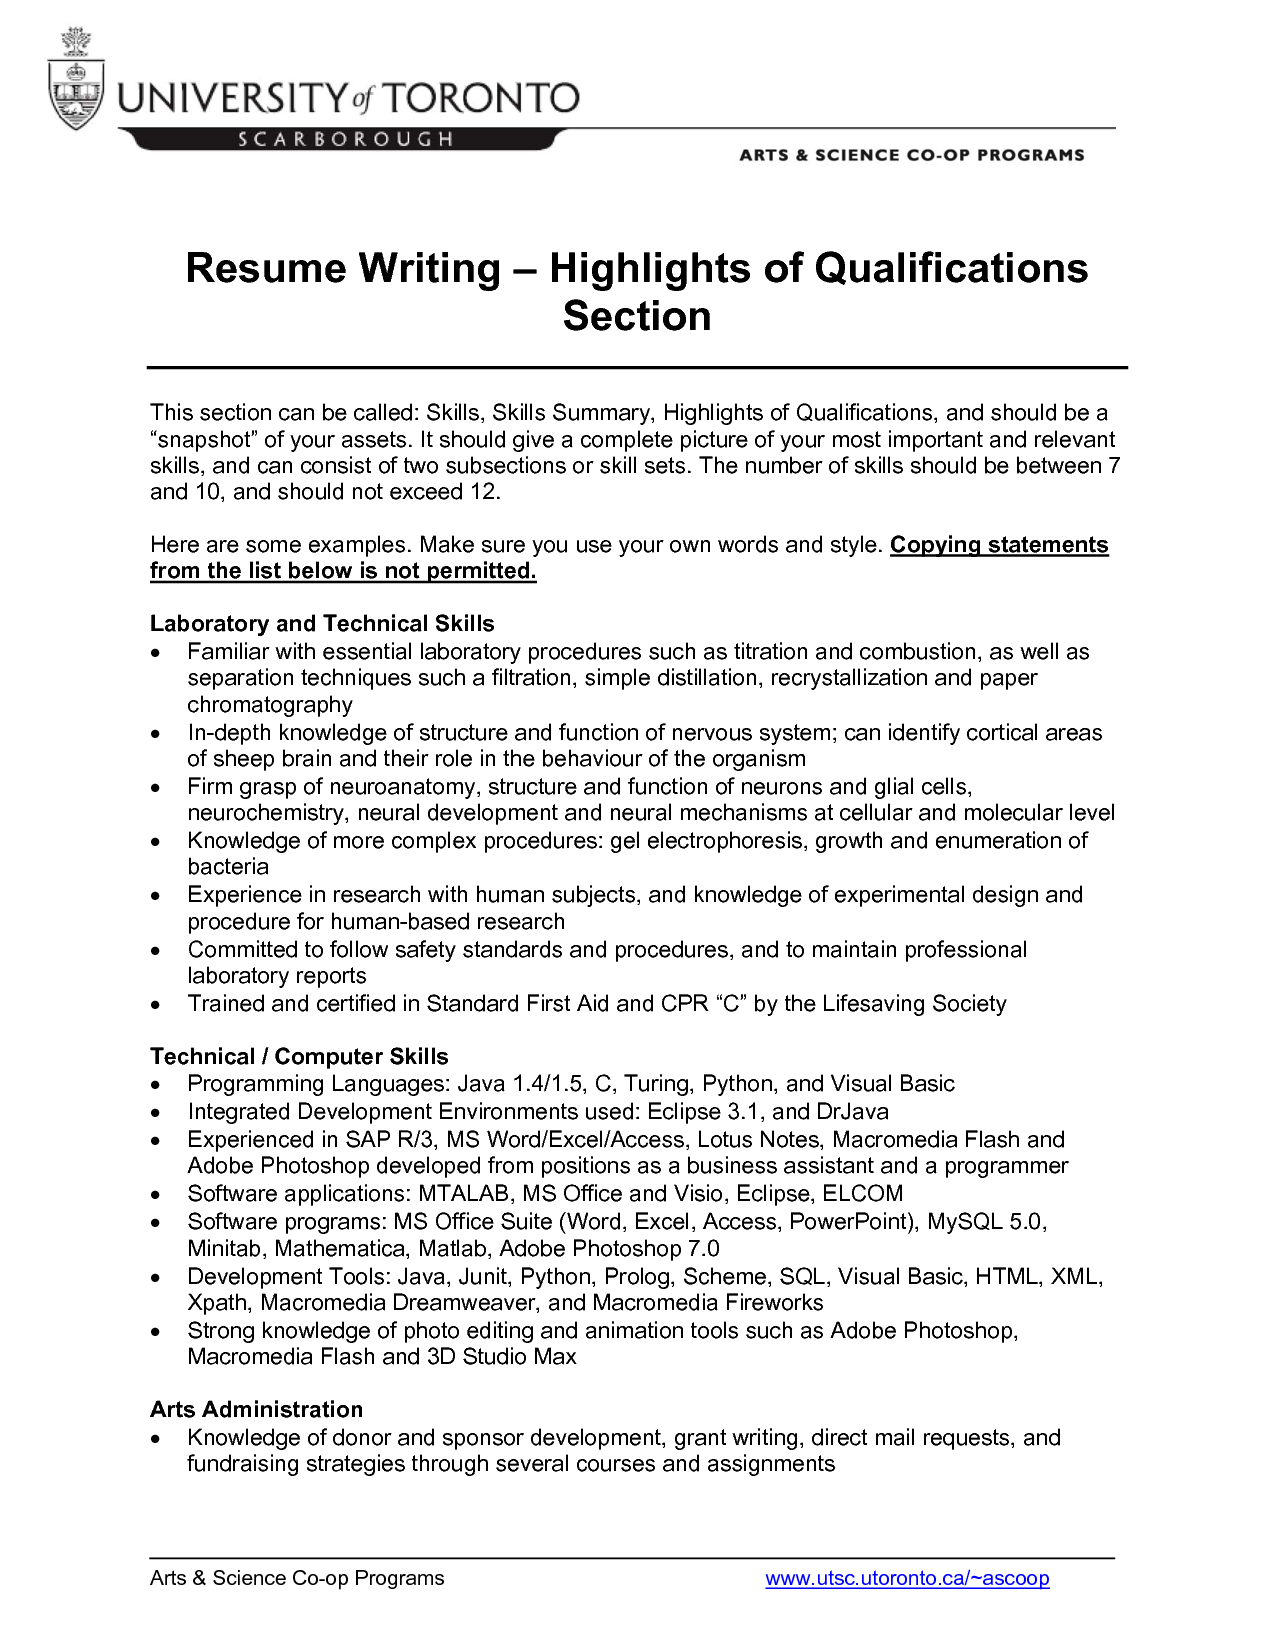 Sample Resume Email Introduction Resume : Introduction Via Email Brand  Management Cover Letter .  What To Write In Skills Section Of Resume